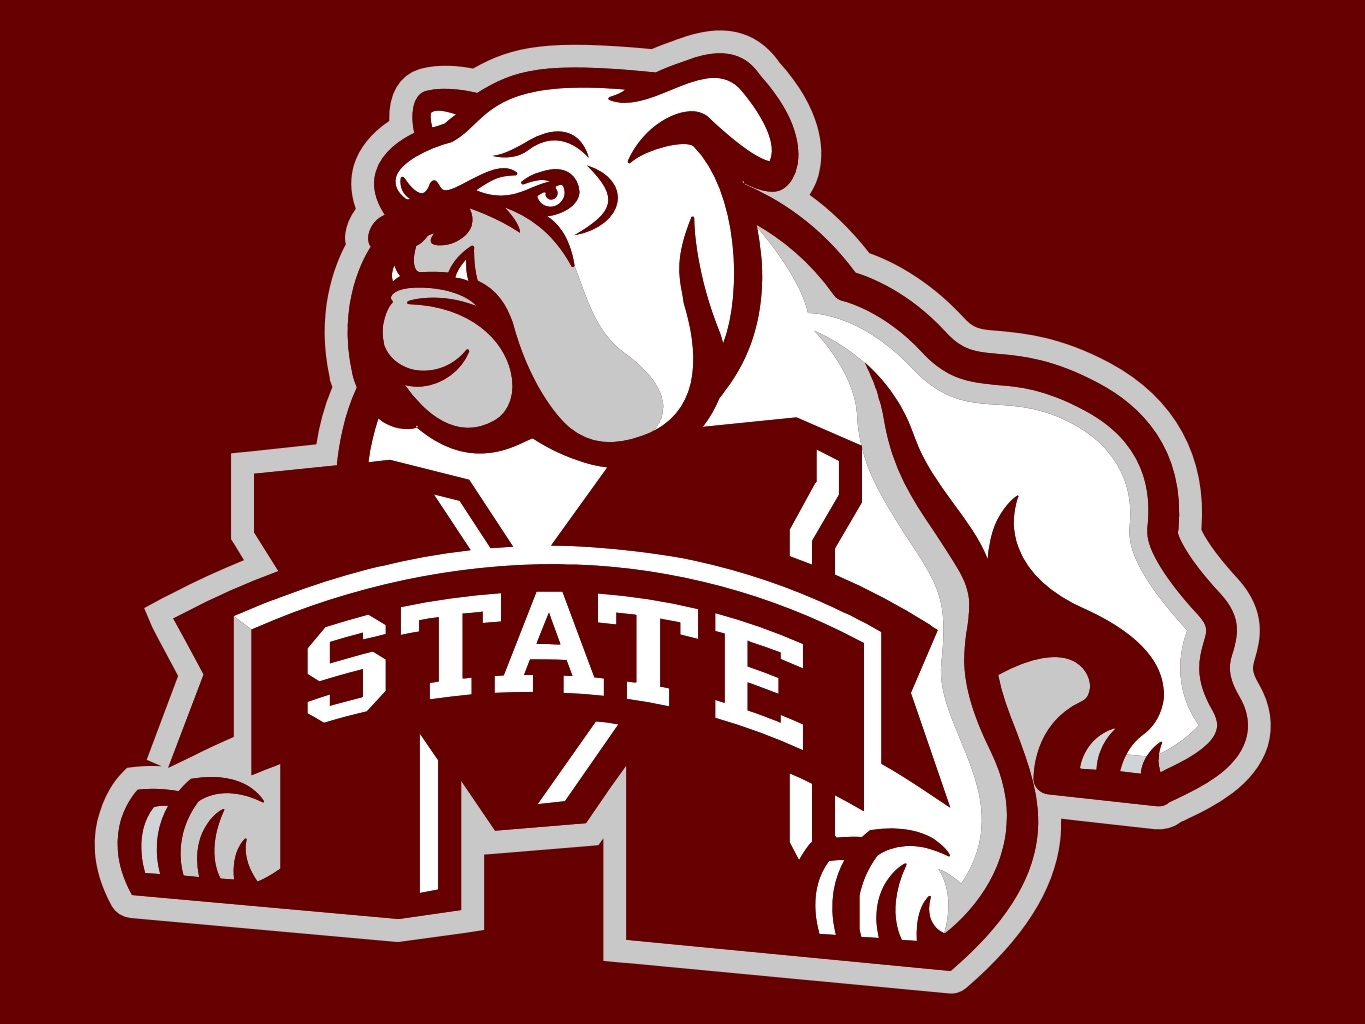 Mississippi state university logo clipart png freeuse library Mississippi state bulldogs clipart - ClipartFest png freeuse library